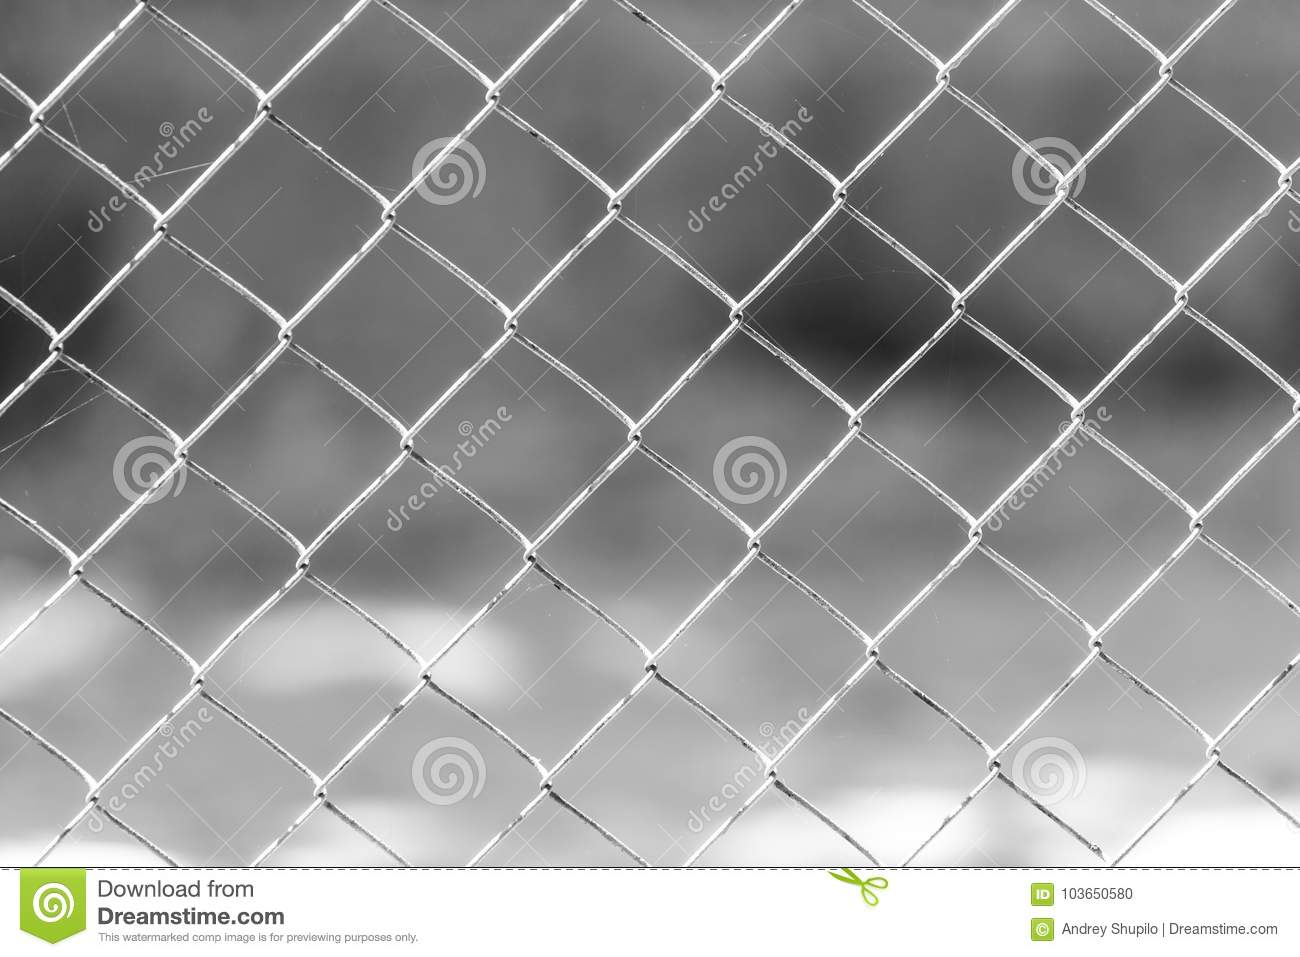 Wire mesh fence stock photo. Image of field, grid, black - 103650580